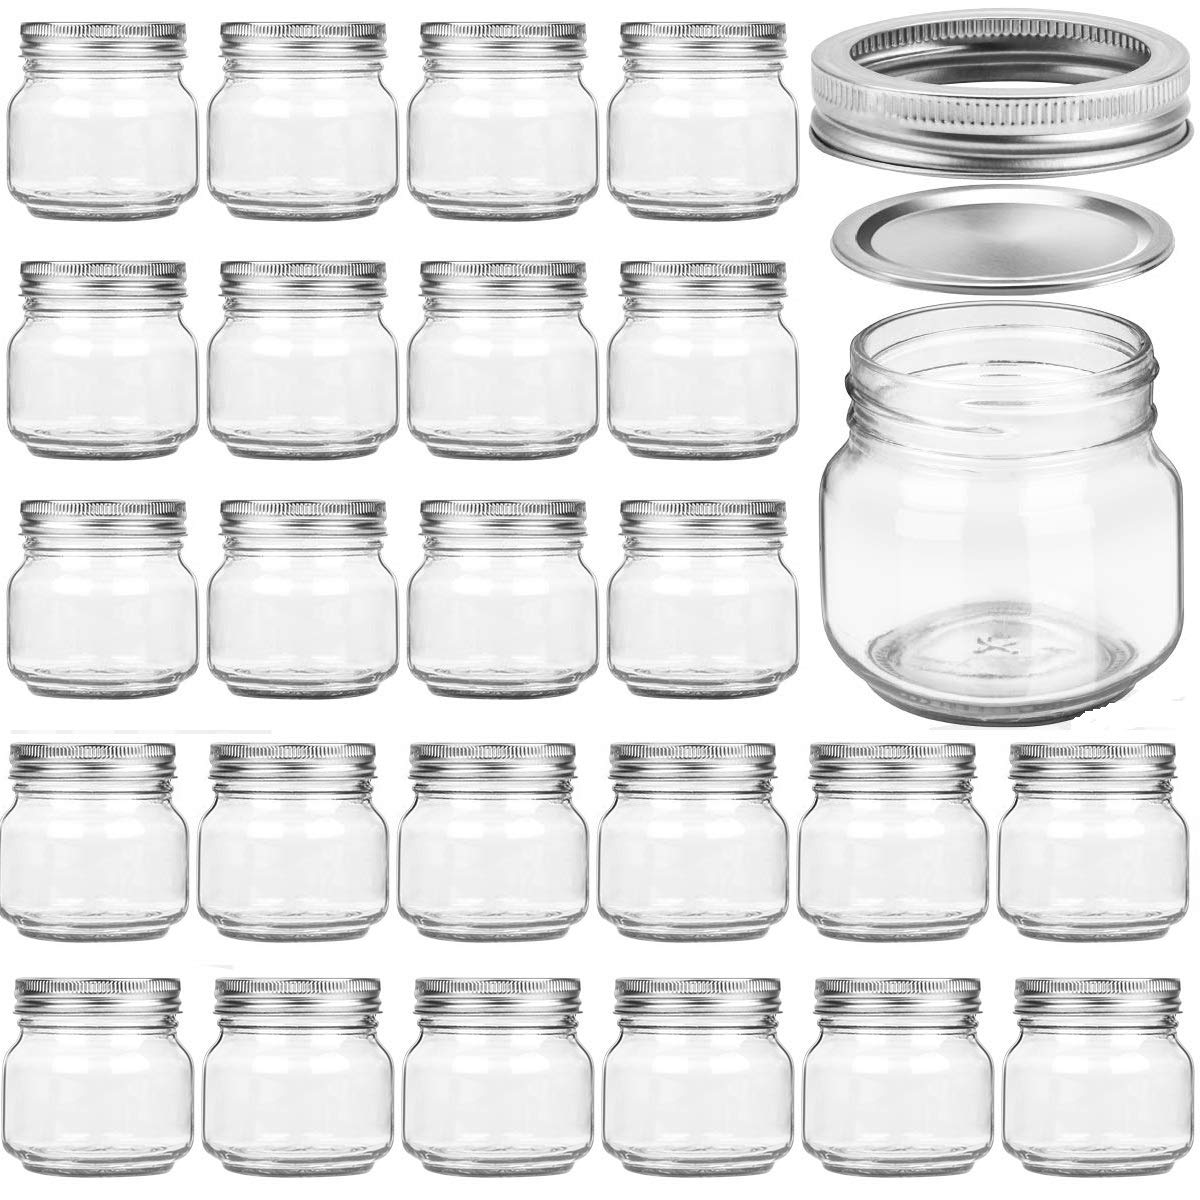 24 PACK Mason Jars 8OZ With Regular Silver Lids and Bands, Ideal for Jam, Honey, Wedding Favors, Shower Favors, Baby Foods, DIY Magnetic Spice Jars, 24 Whiteboard Labels Included by PREMIUM VIALS CREATIVE PACKAGING SOLUTIONS